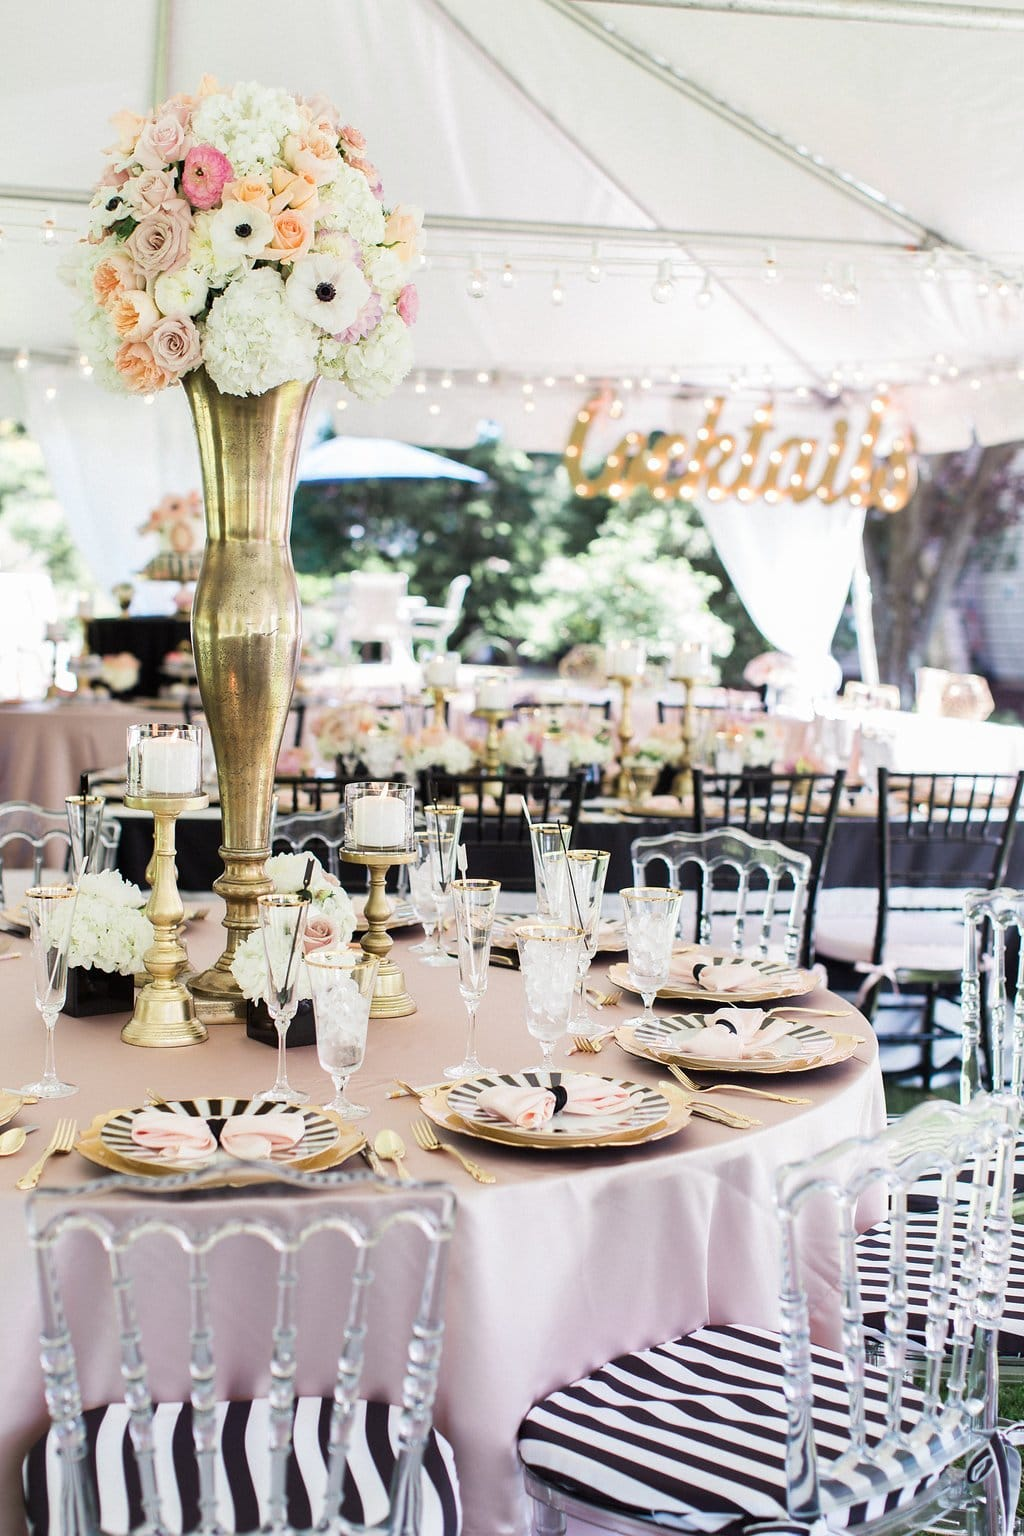 black and white with pink and gold accent bridal shower under white tent in backyard - Black & White Kate Spade Inspired Bridal Shower